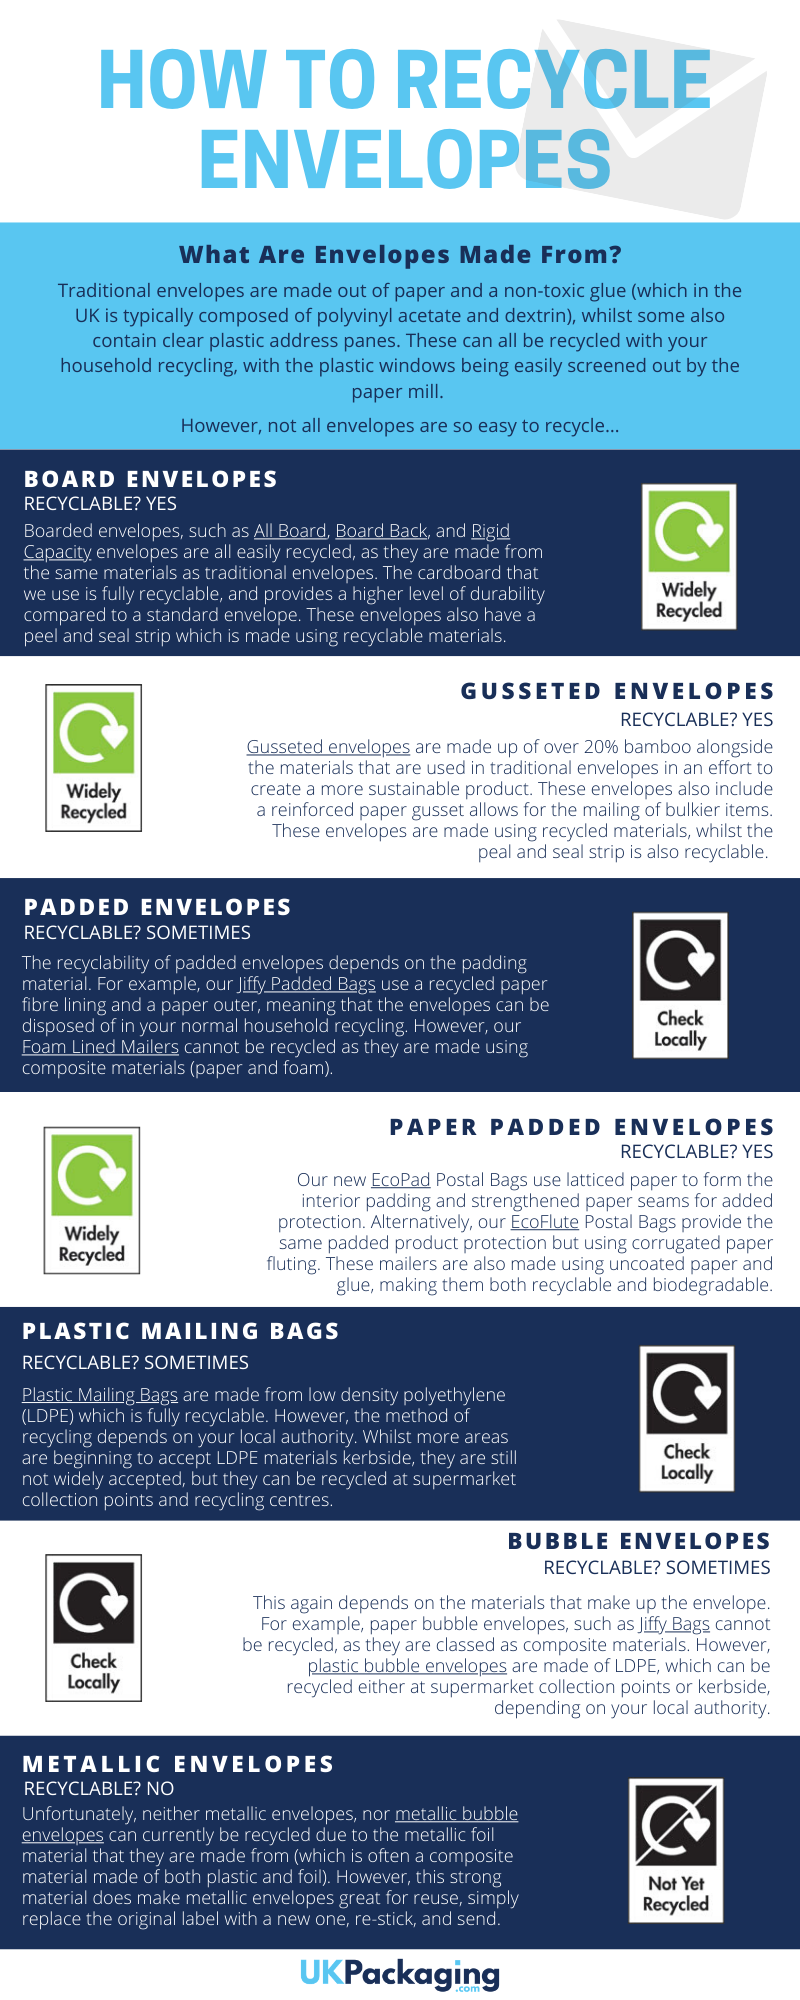 Recycling Envelopes